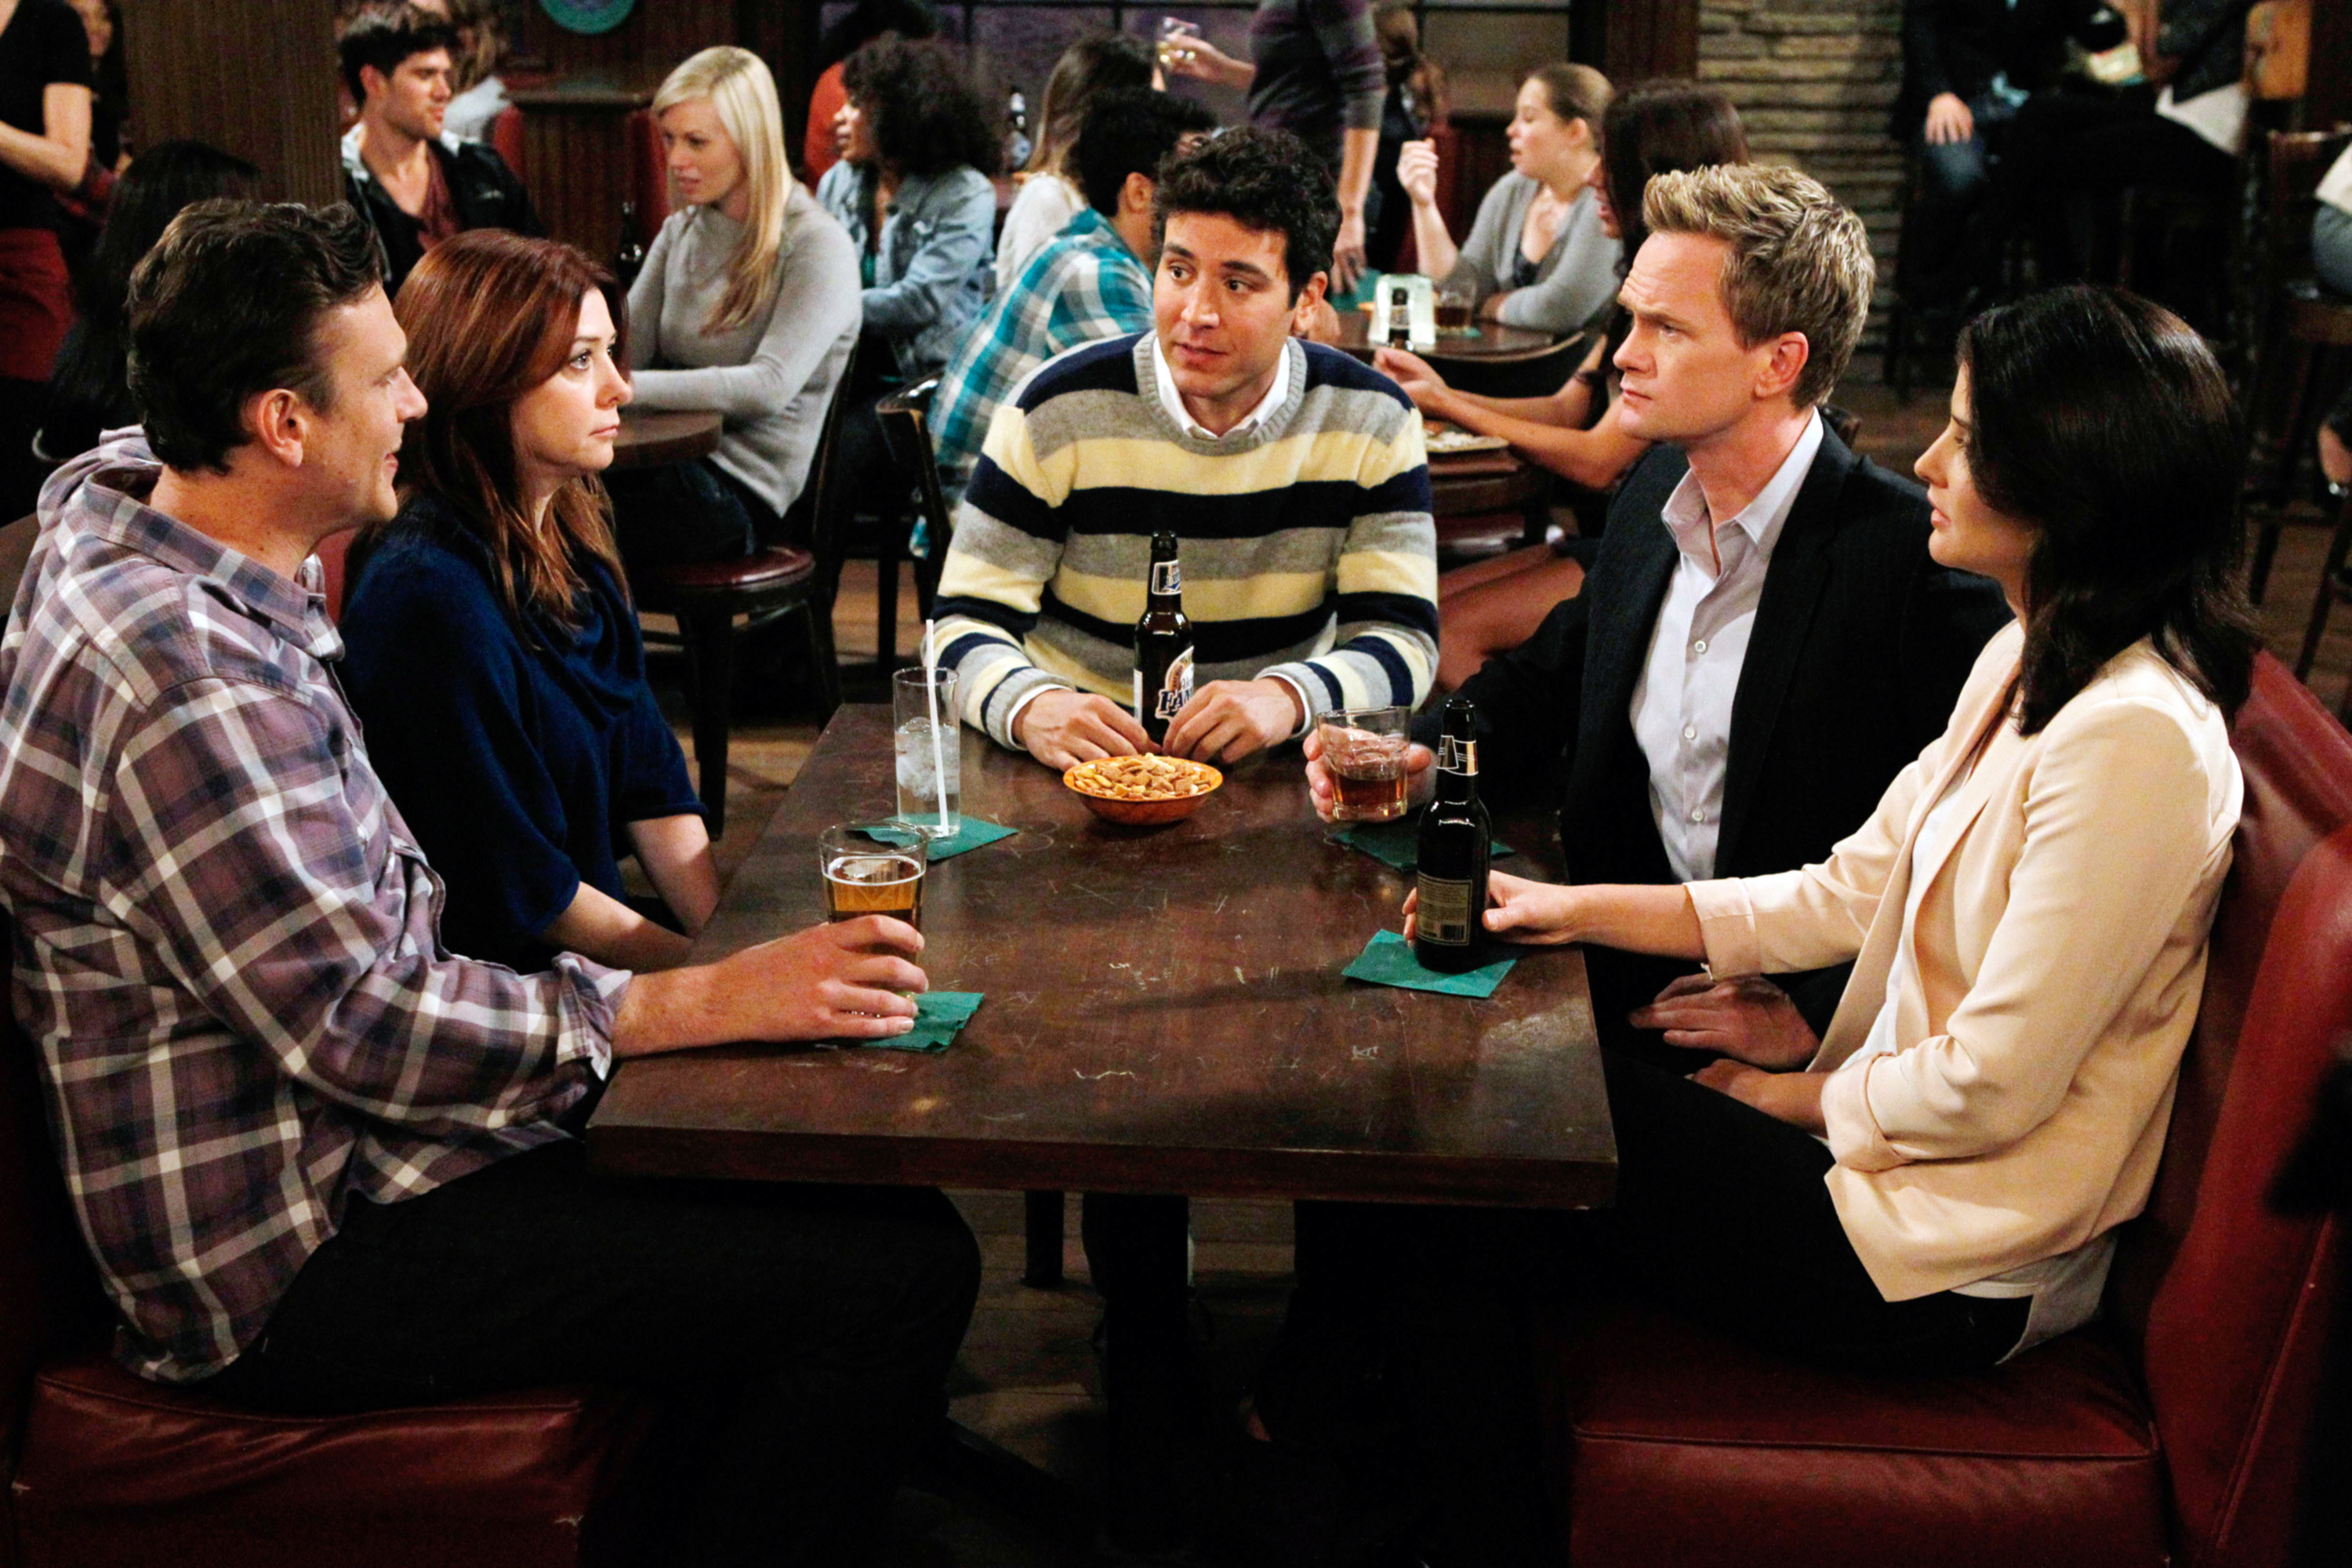 Cast of How I Met Your Mother at a bar